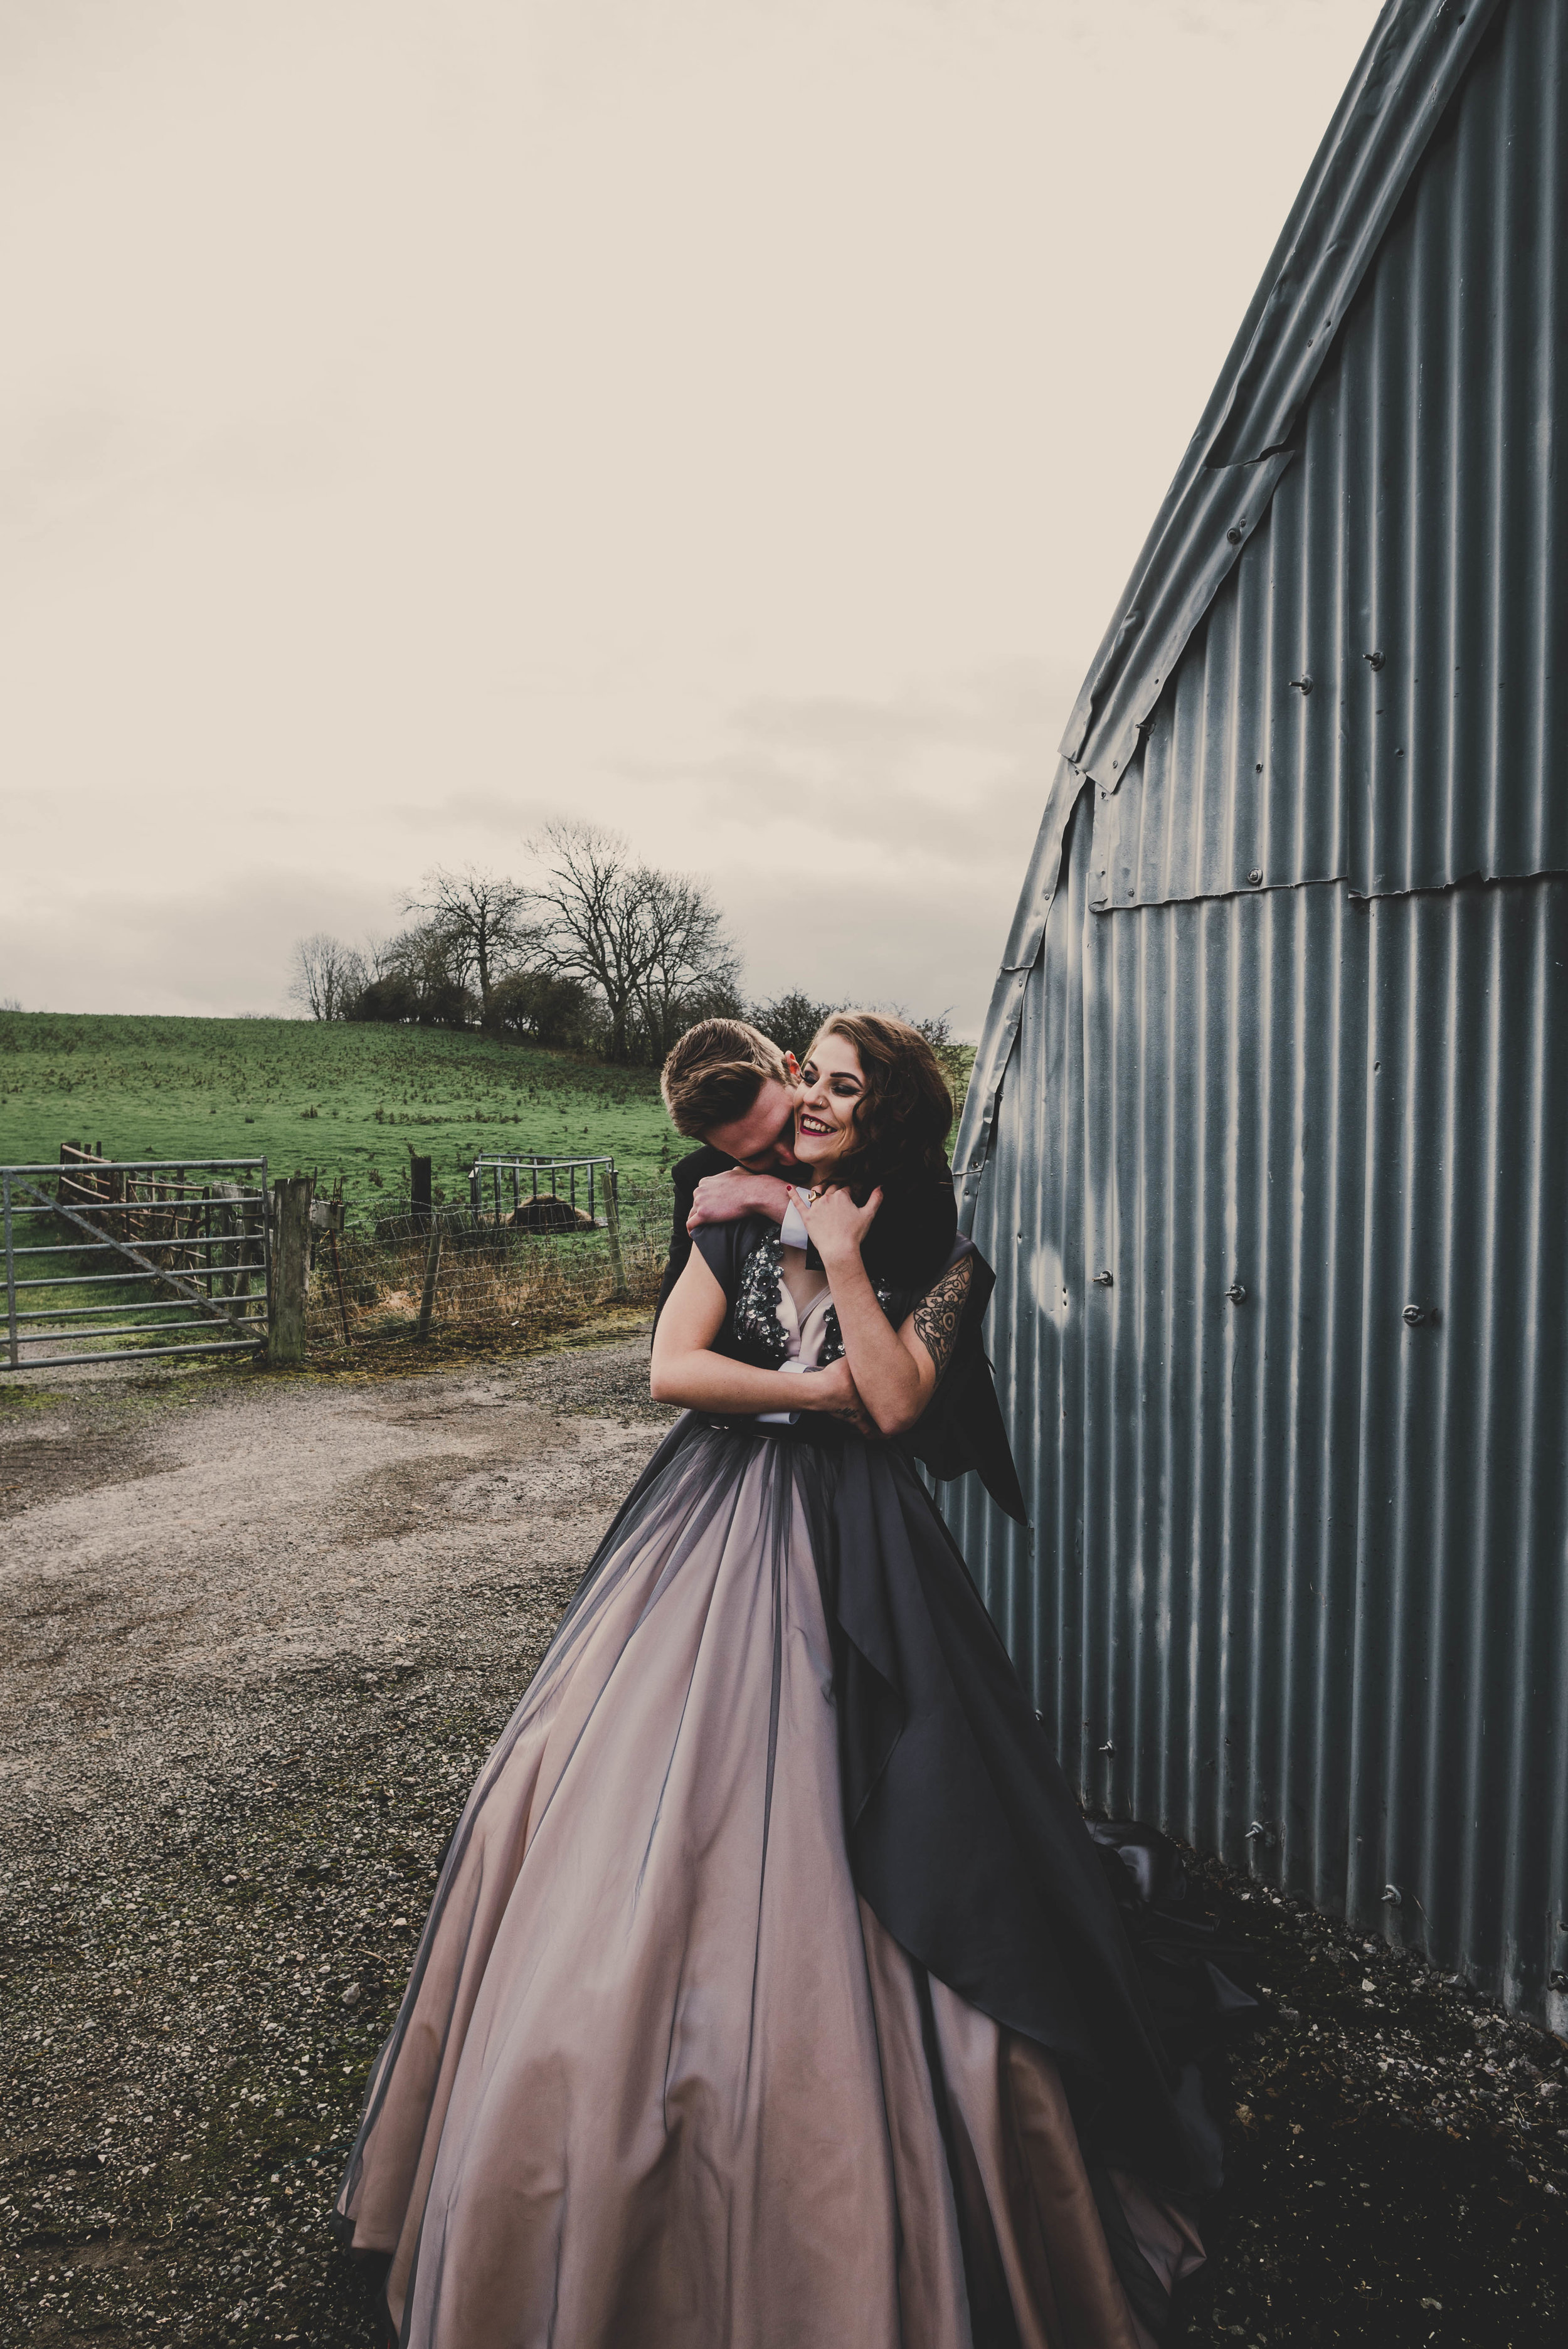 edgy-wedding-photography-in-lake-district (5).jpg